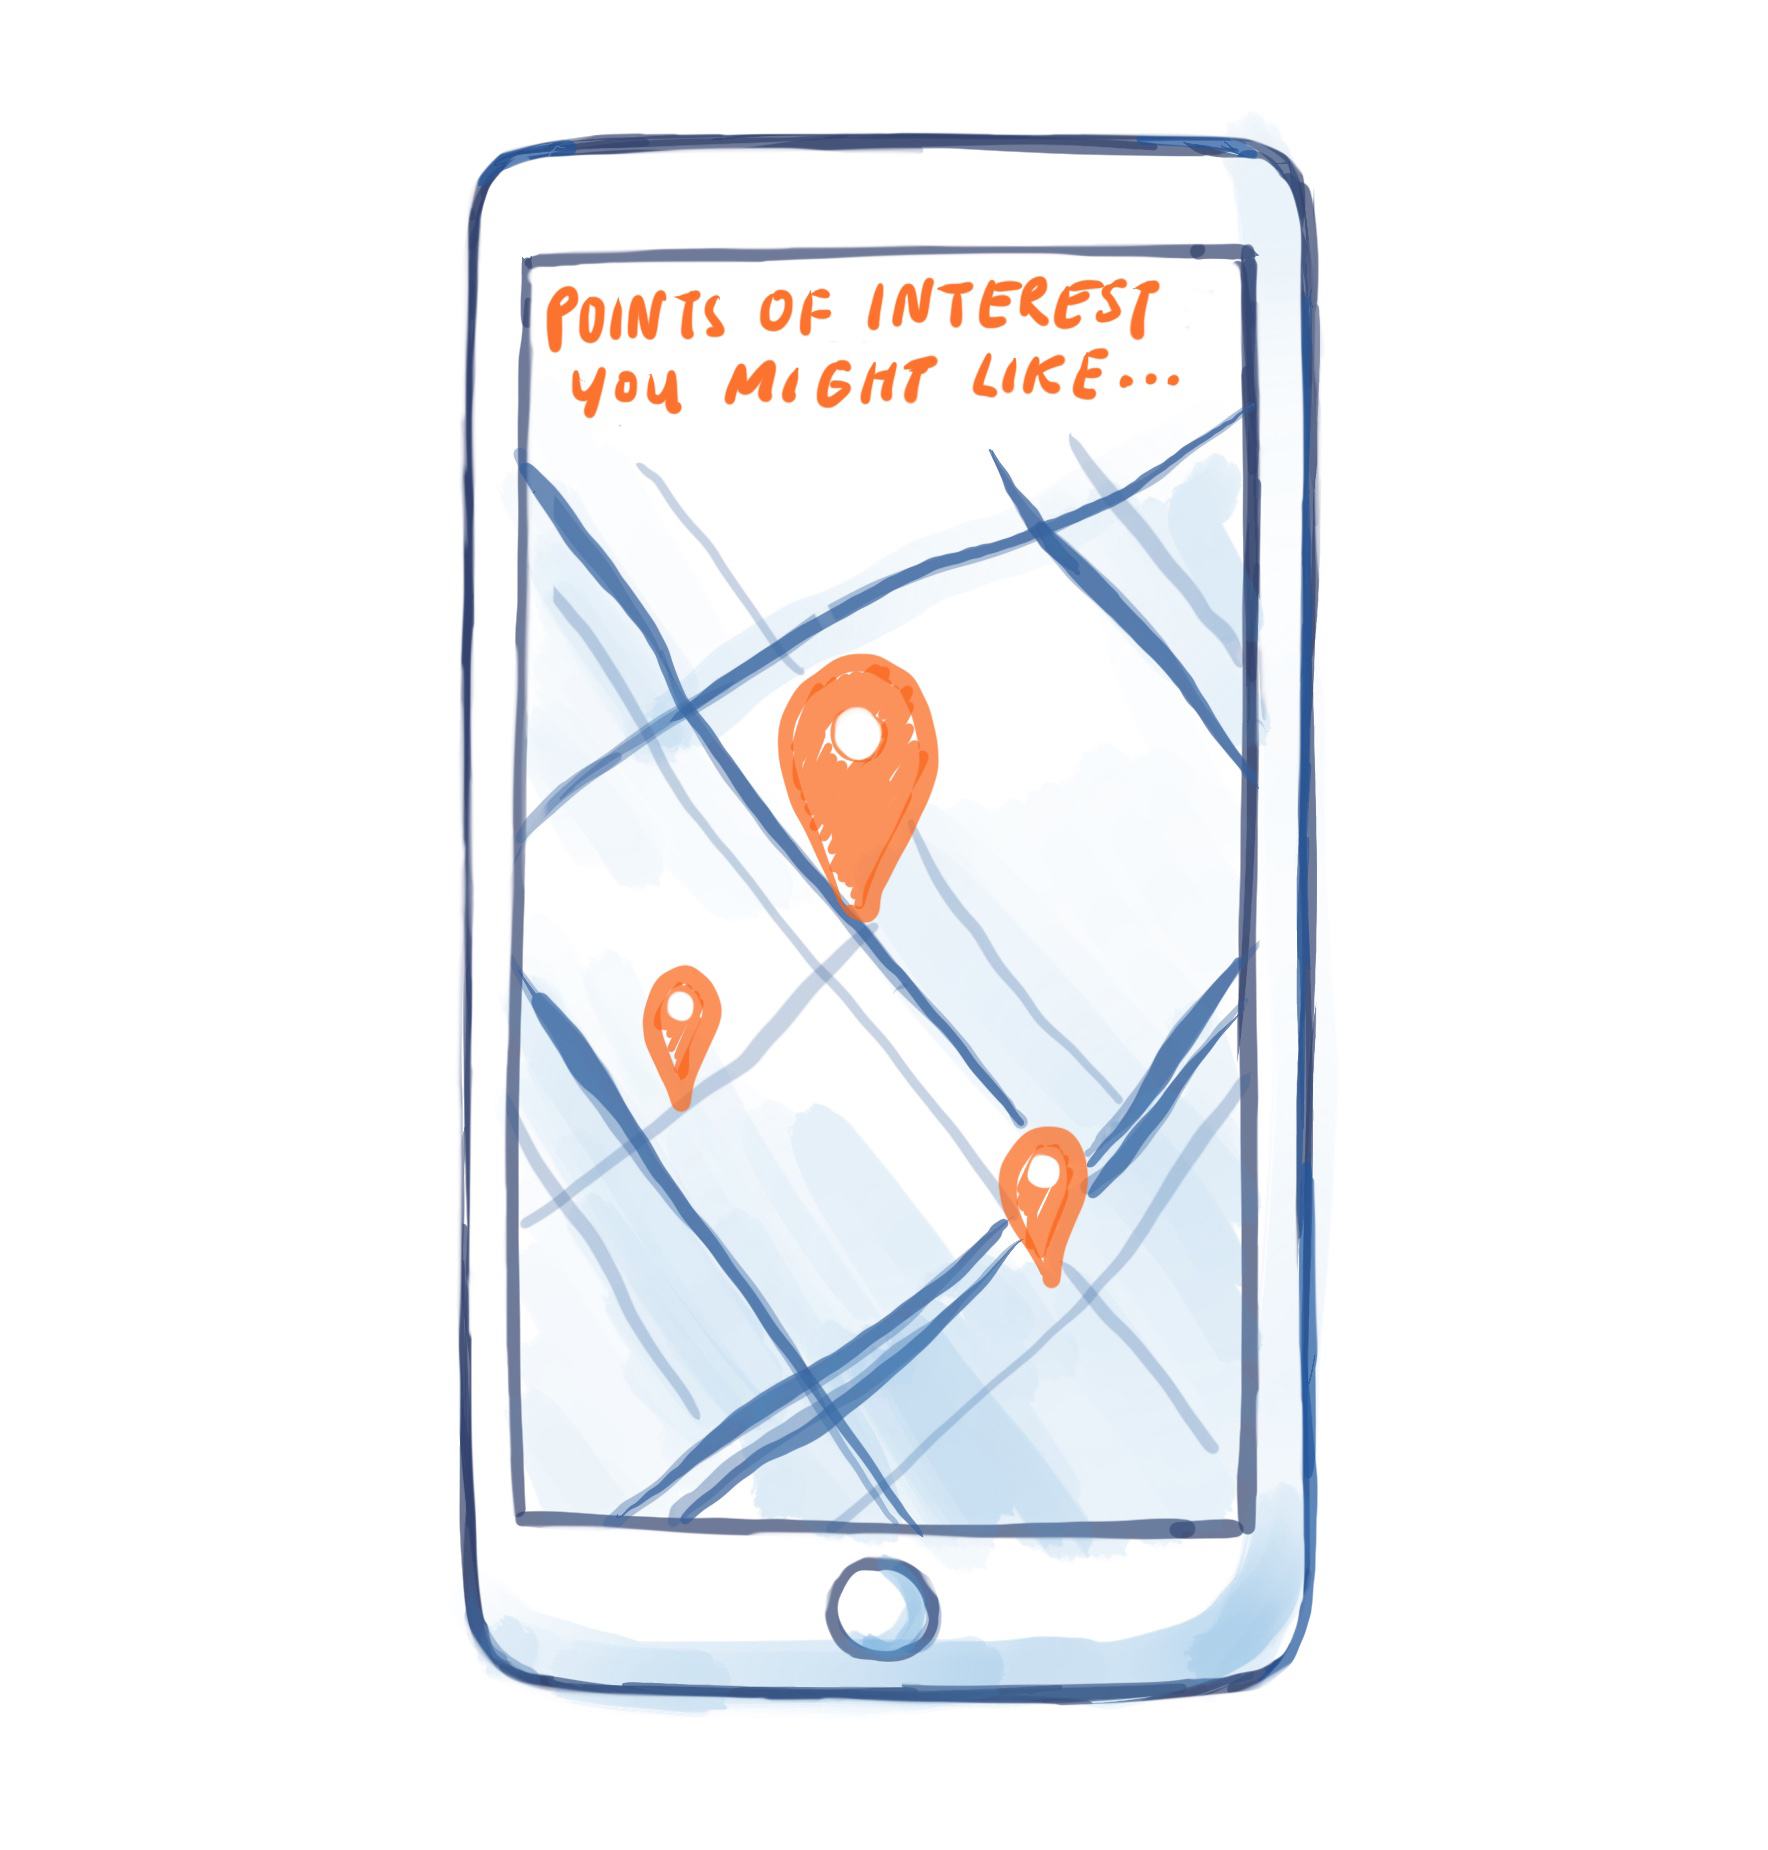 Opportunity space: physical location based personalization